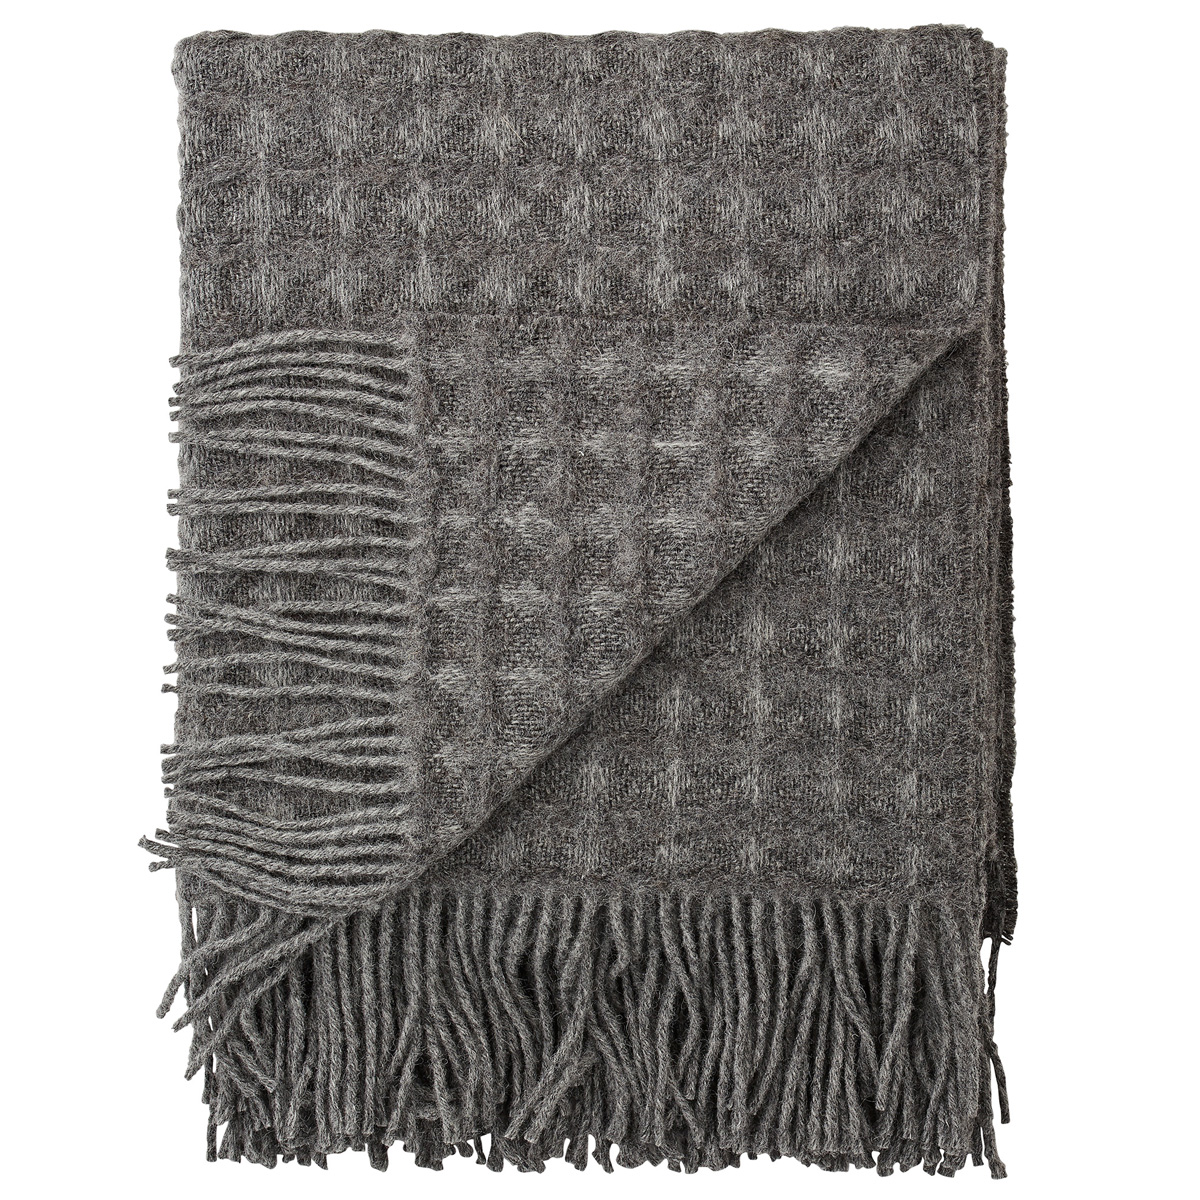 lene-bjerre-darline-throw-170x130-cm-761724517-front